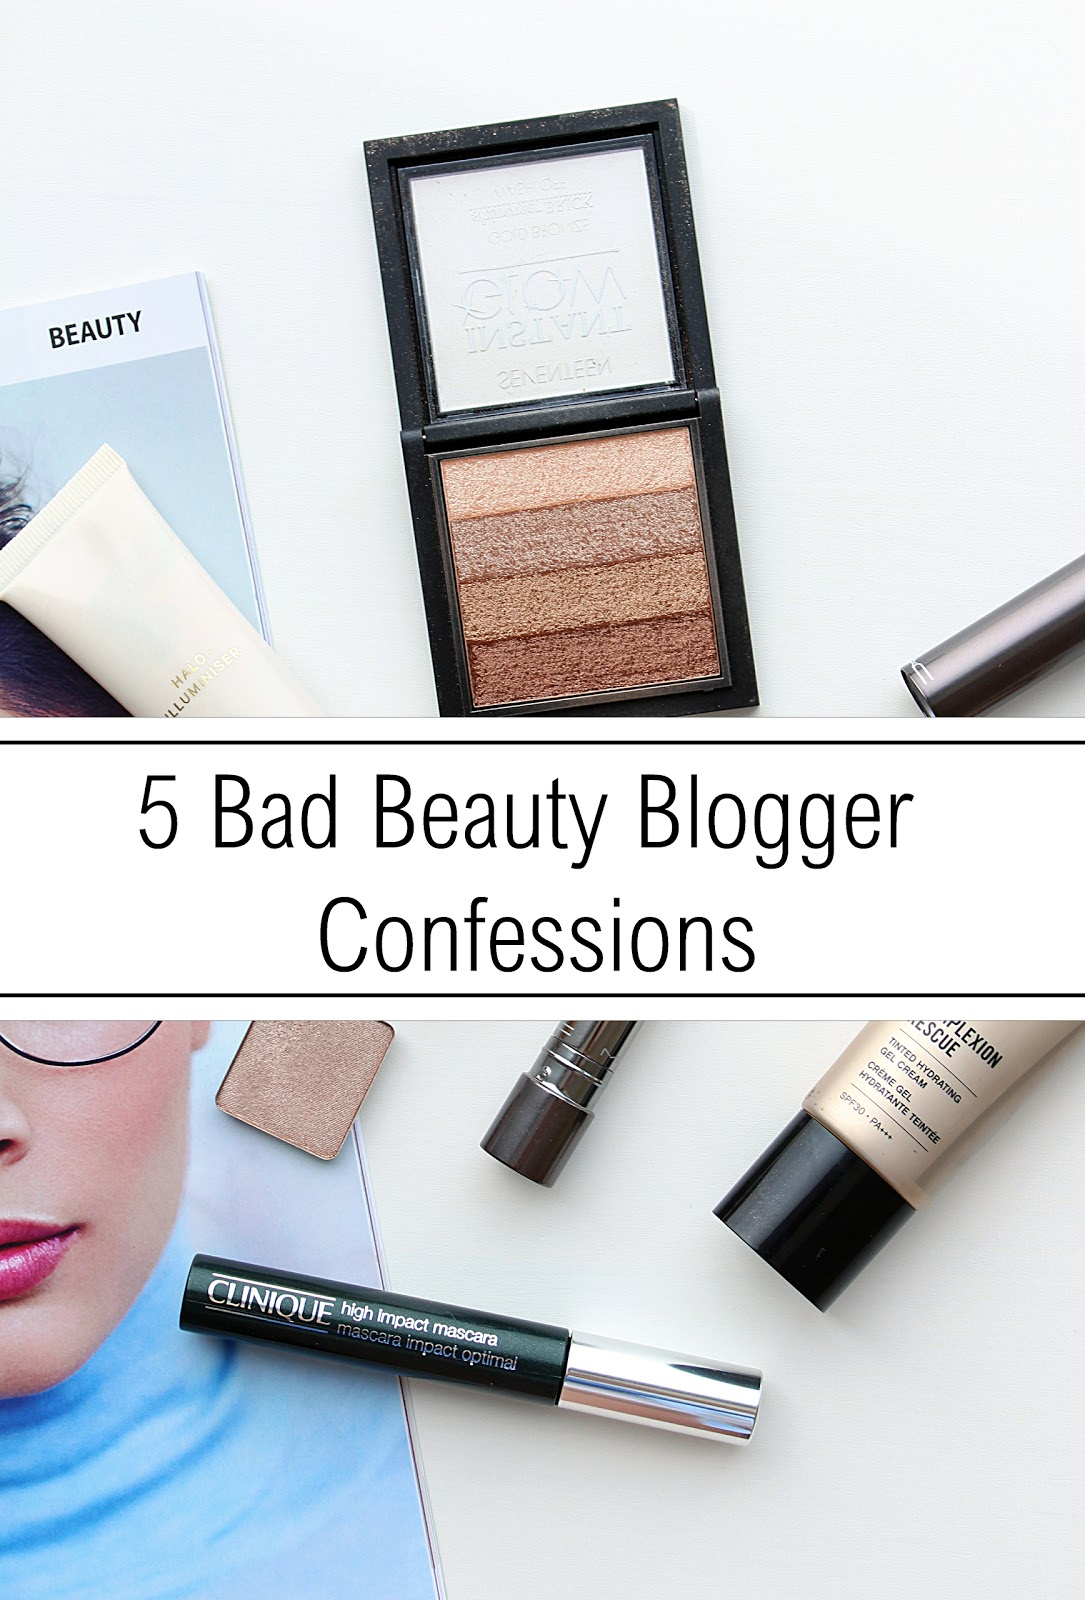 5 bad Beauty Blogger Confessions